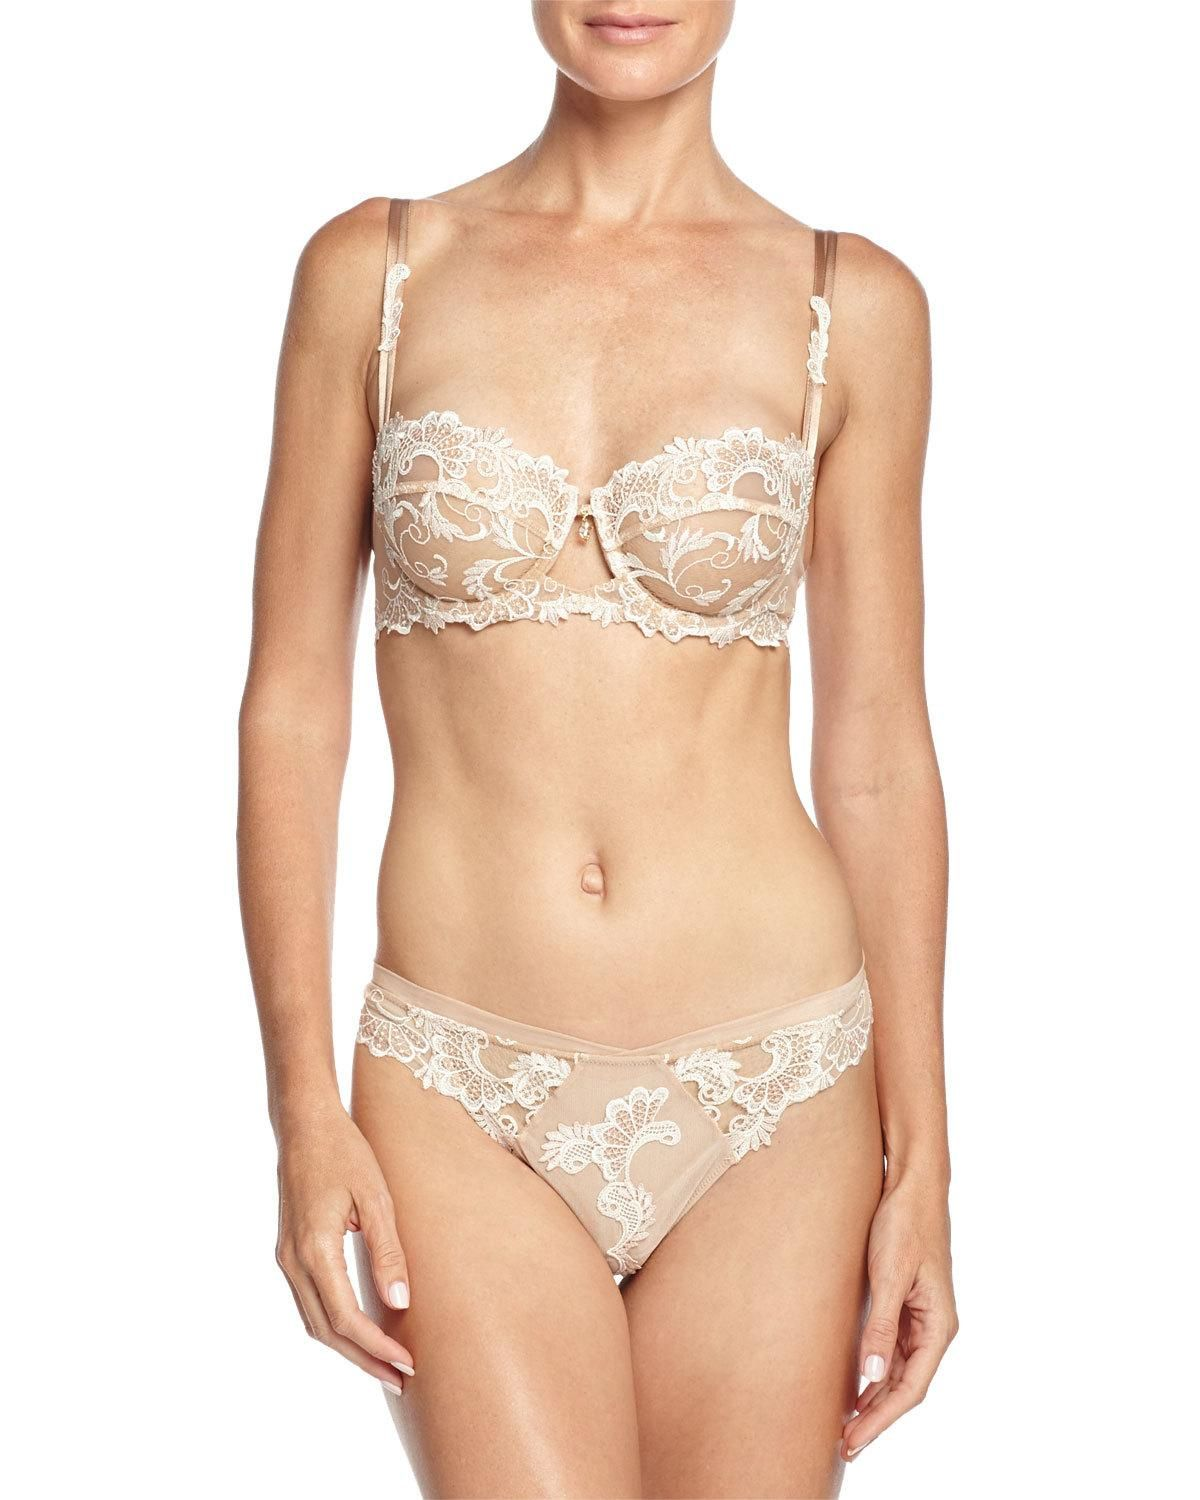 6369b0a91f Lise Charmel Dressing Floral-Lace Thong | Products | Floral lace ...